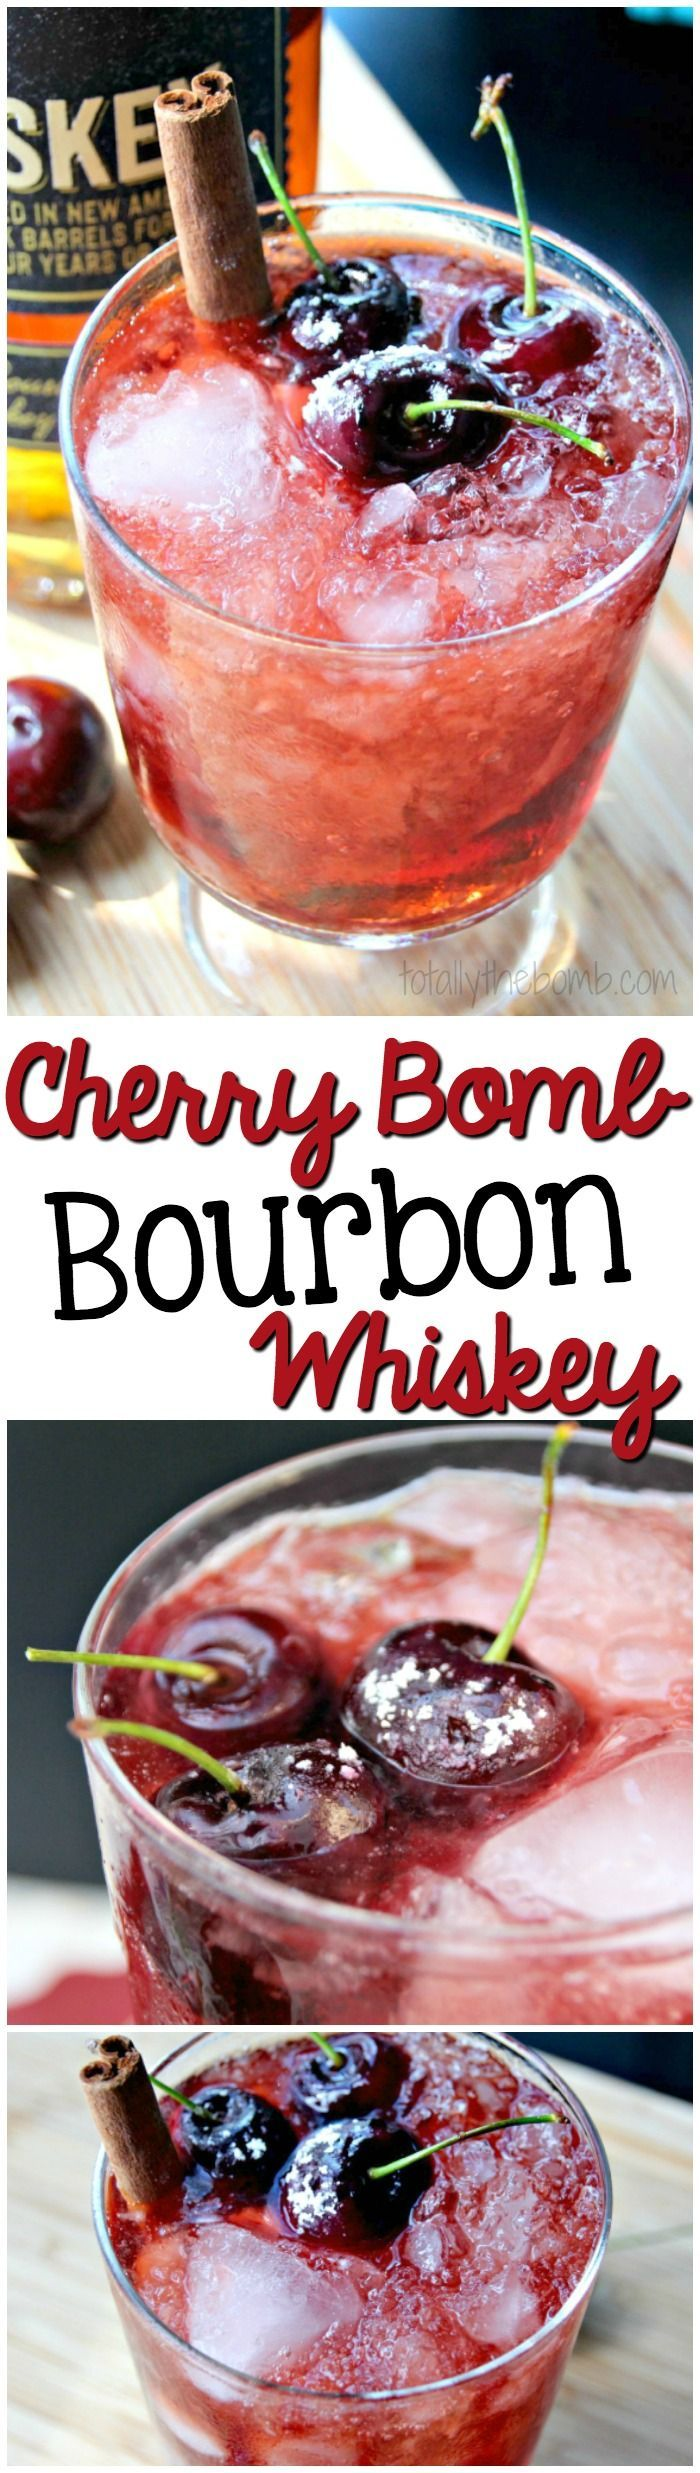 I am all about a hot toddy, and this cherry bomb bourbon whiskey is the very definition of hot and toddy. You need this in your life. Trust. | #whiskey #alcohol #cherrybomb #bourbon #drinks #cocktails #cherry #cherries #toddy